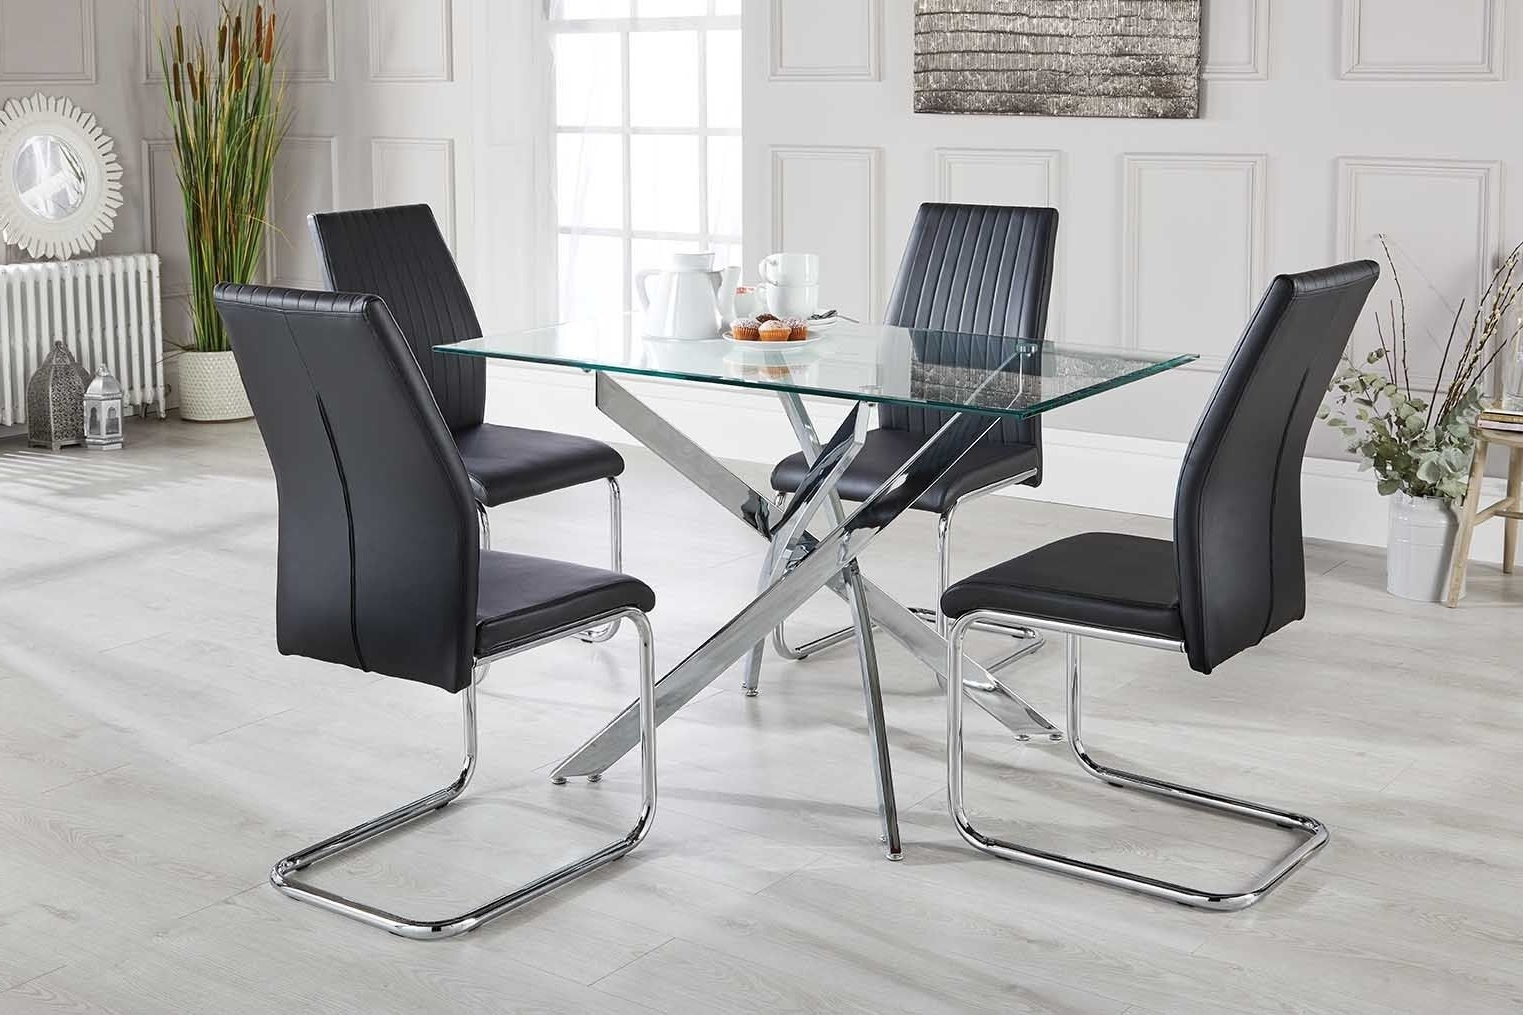 Chrome Glass Dining Tables Inside Favorite Leonardo Black White Chrome Glass Dining Table Set And 4 Leather (View 18 of 25)